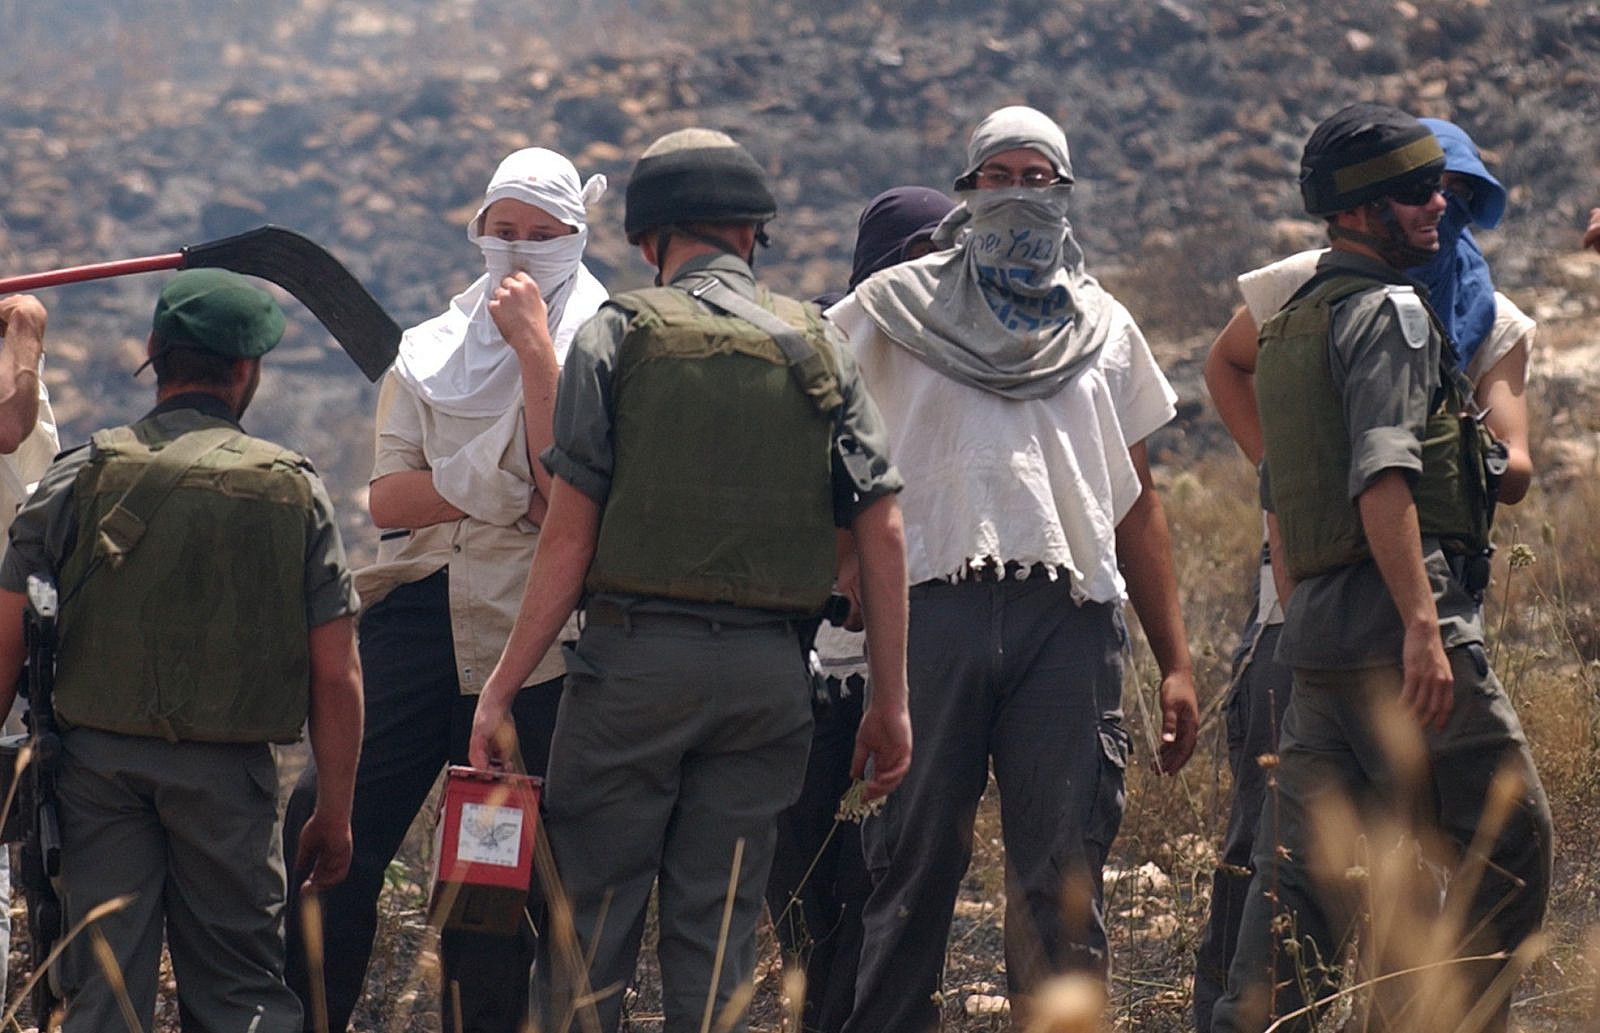 Masked Israeli settlers watch after Palestinian fields were set on fire in the village of Asira al-Qiblyia in the northern West Bank on June 2, 2010. According to Palestinian villagers, Jewish settlers from the nearby Yitzhar settlement set ablaze their olive and wheat fields. (Wagdi Ashtiyeh/Flash90)